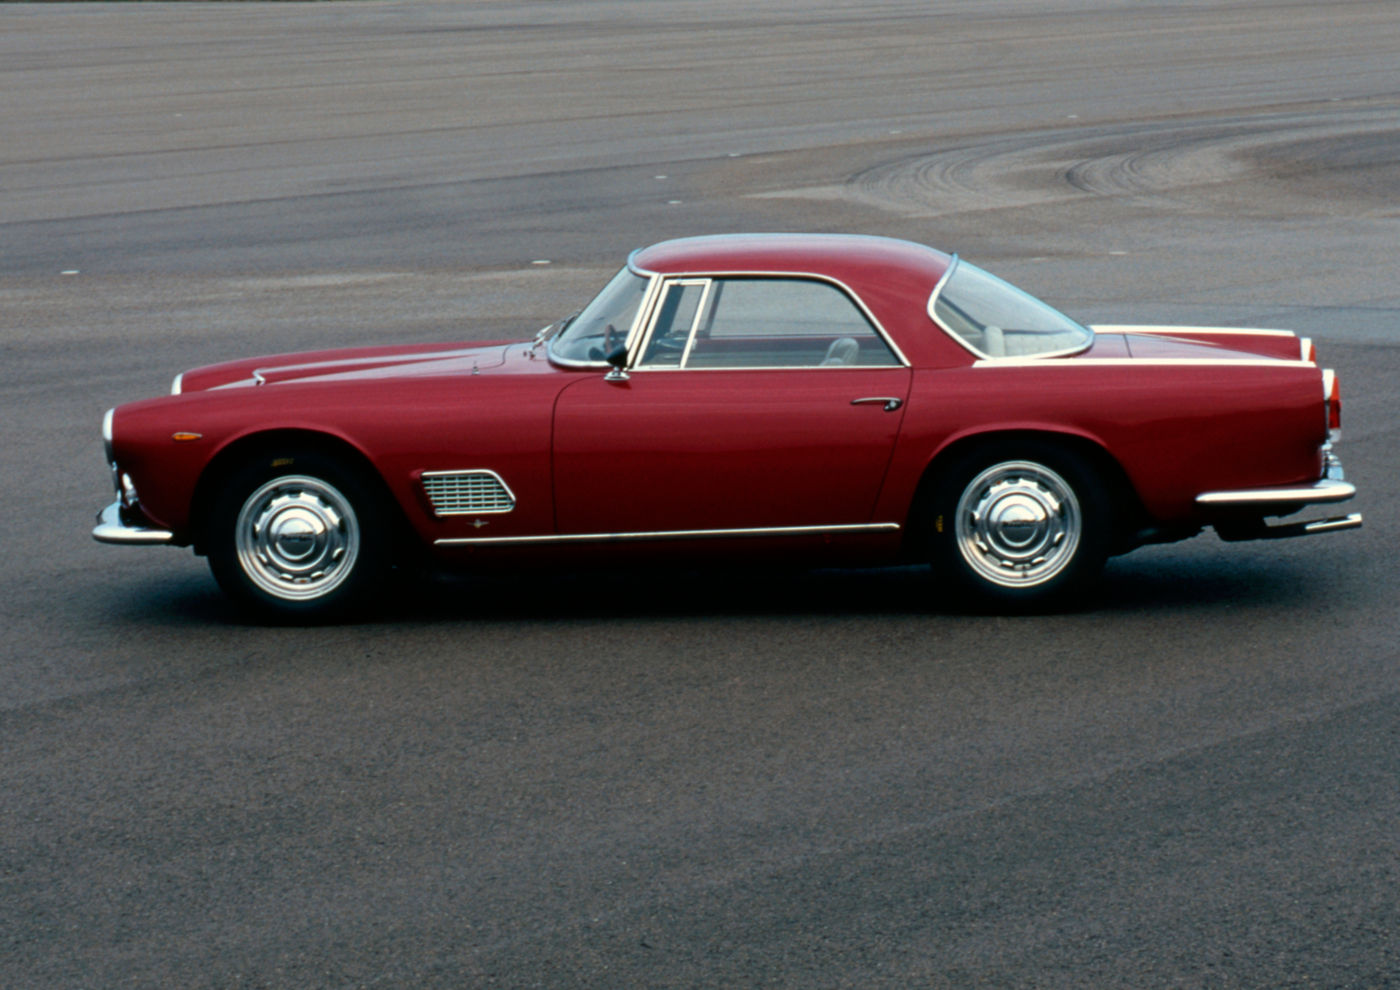 1957 Maserati 3500GT - side view of a red classic car model